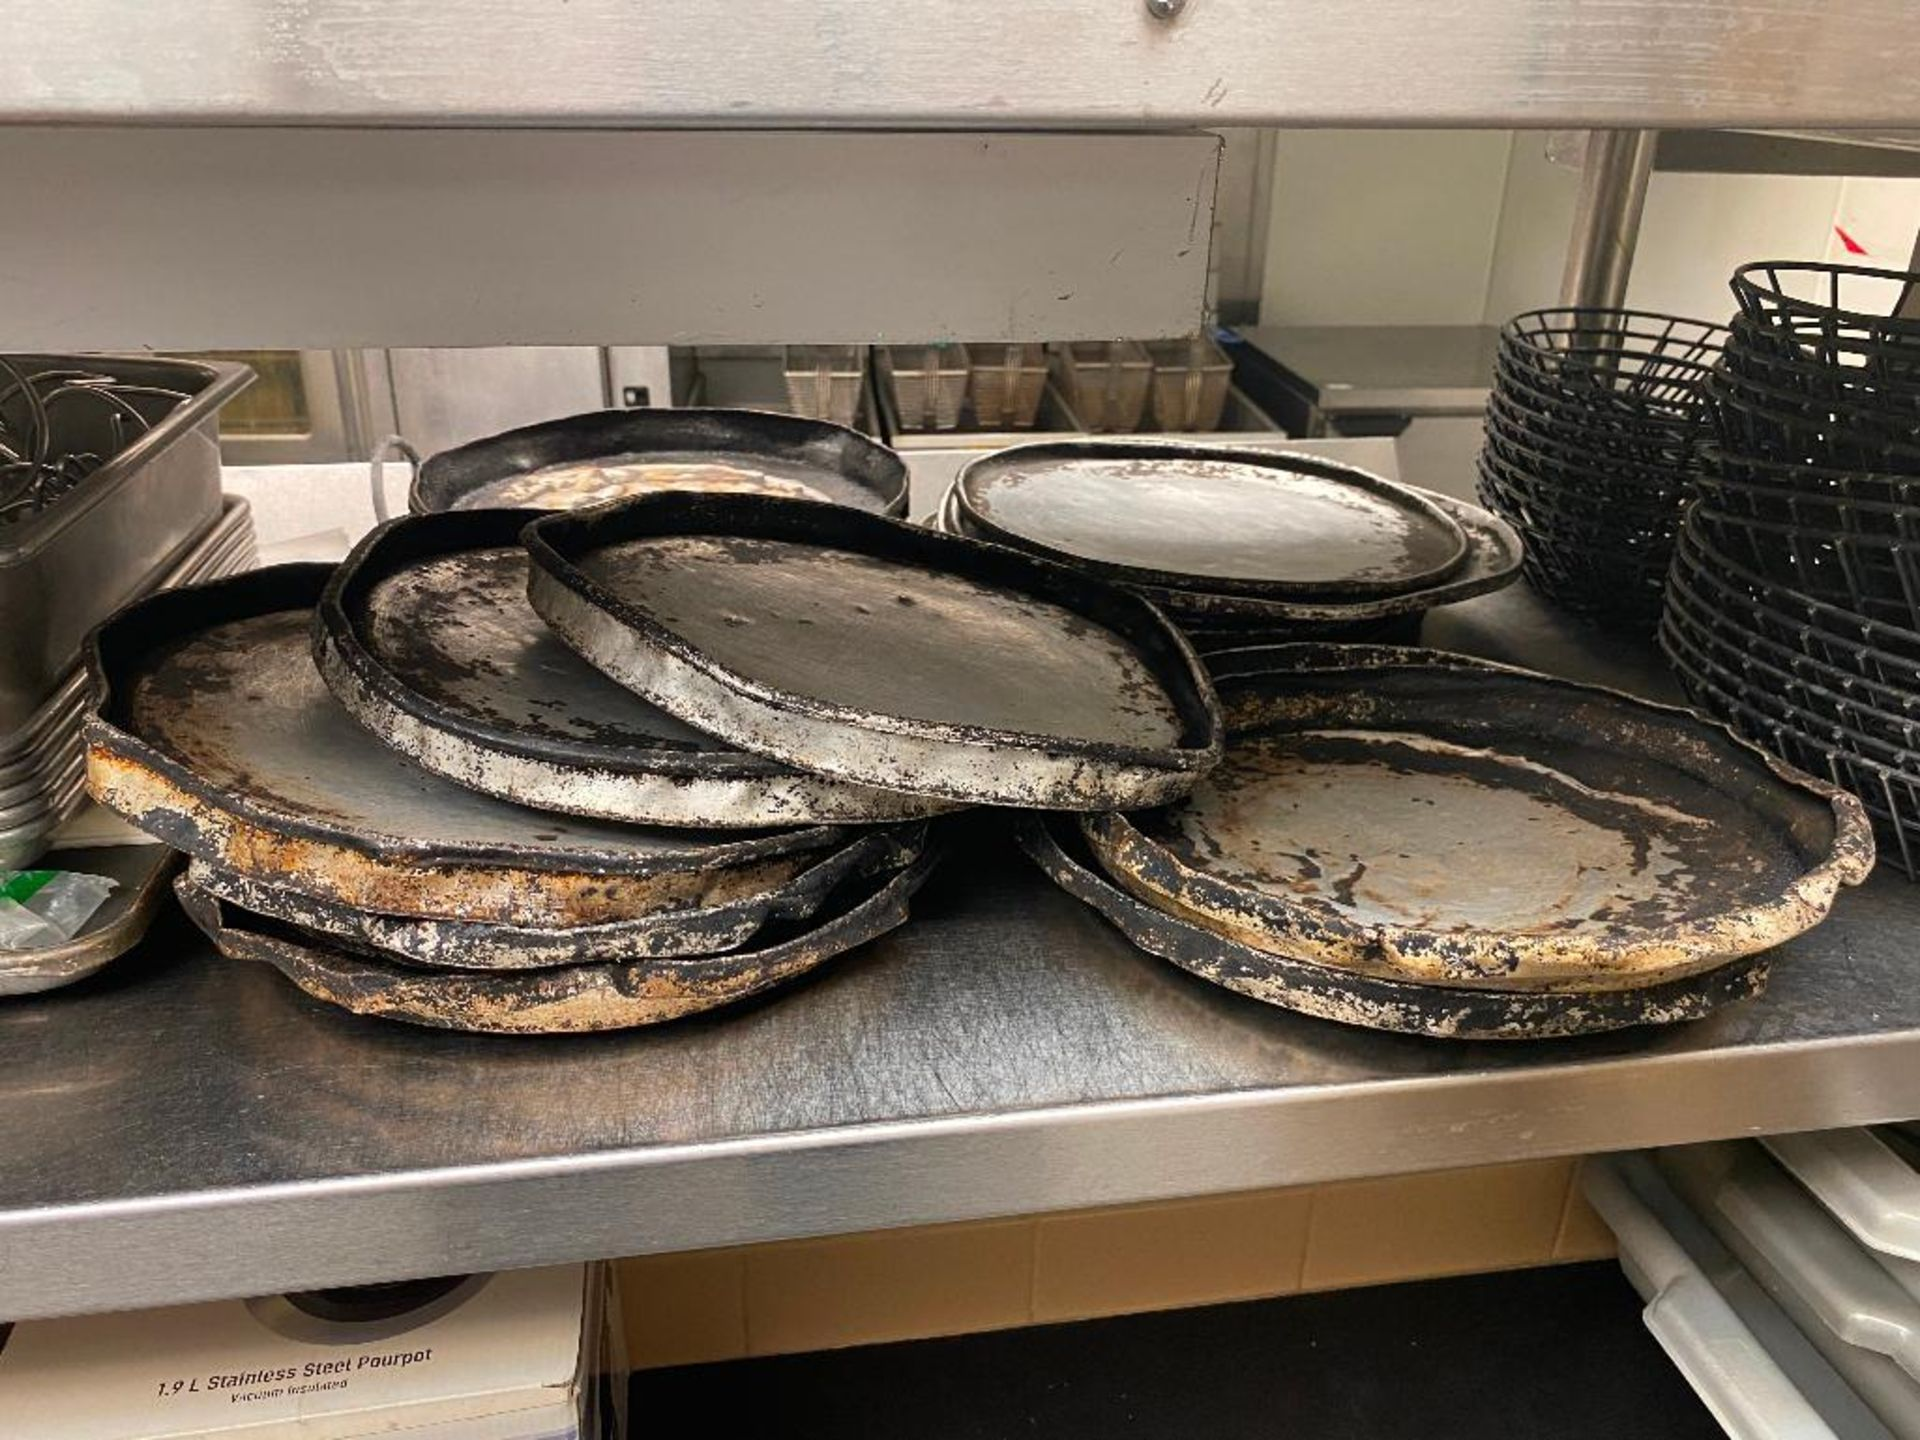 LOT OF ASSORTED PIZZA PANS, WIRE SERVING BASKETS & TACO SERVERS - Image 3 of 4